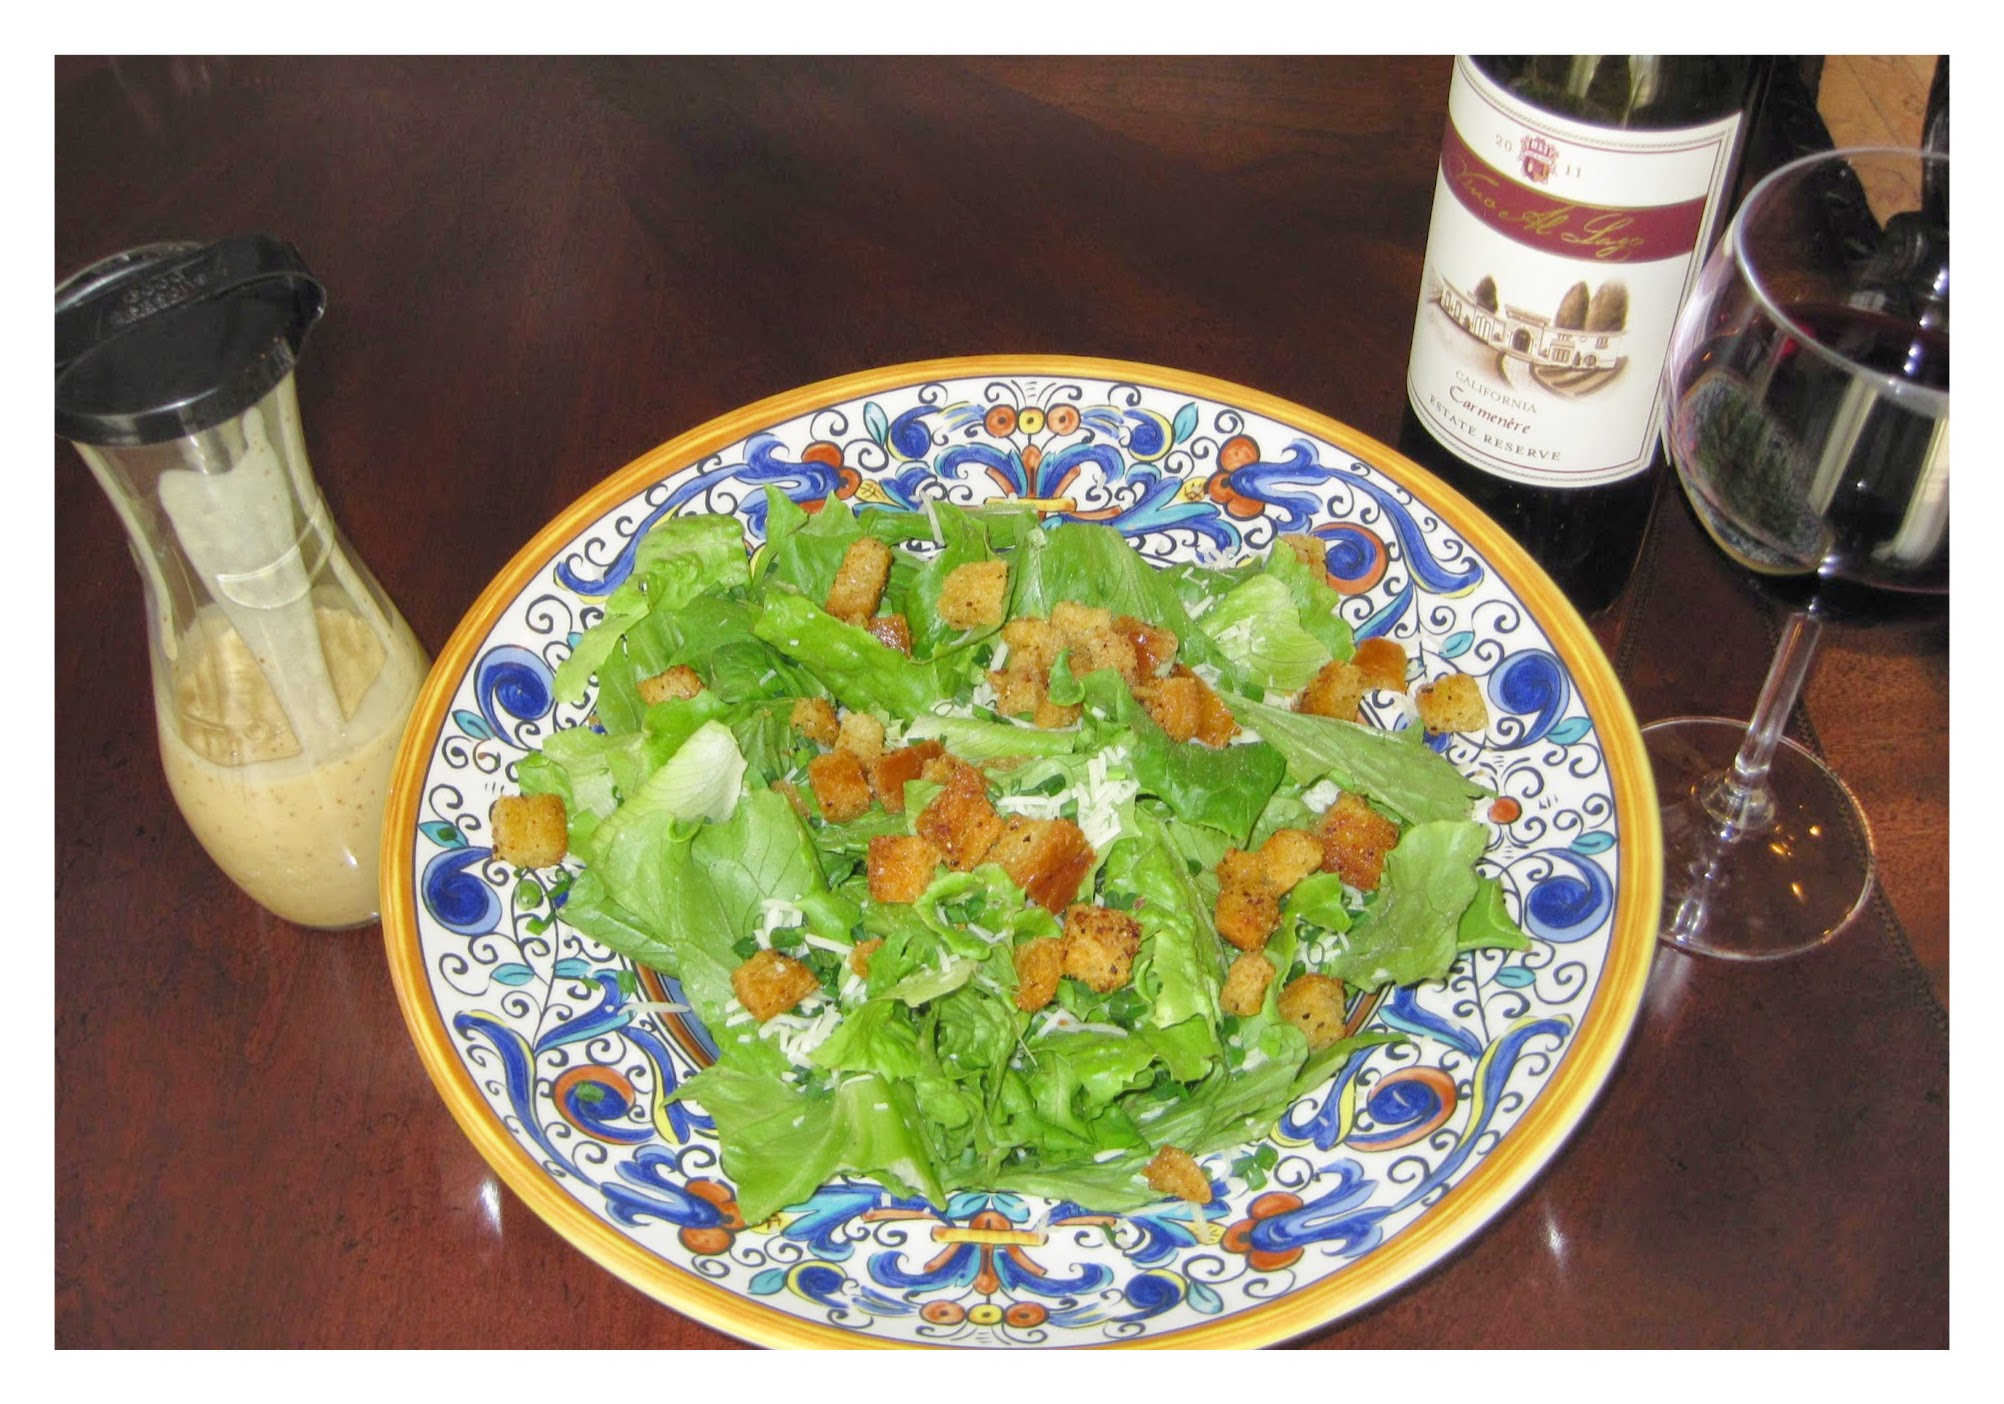 Caesar's Salad Dressing recipe image